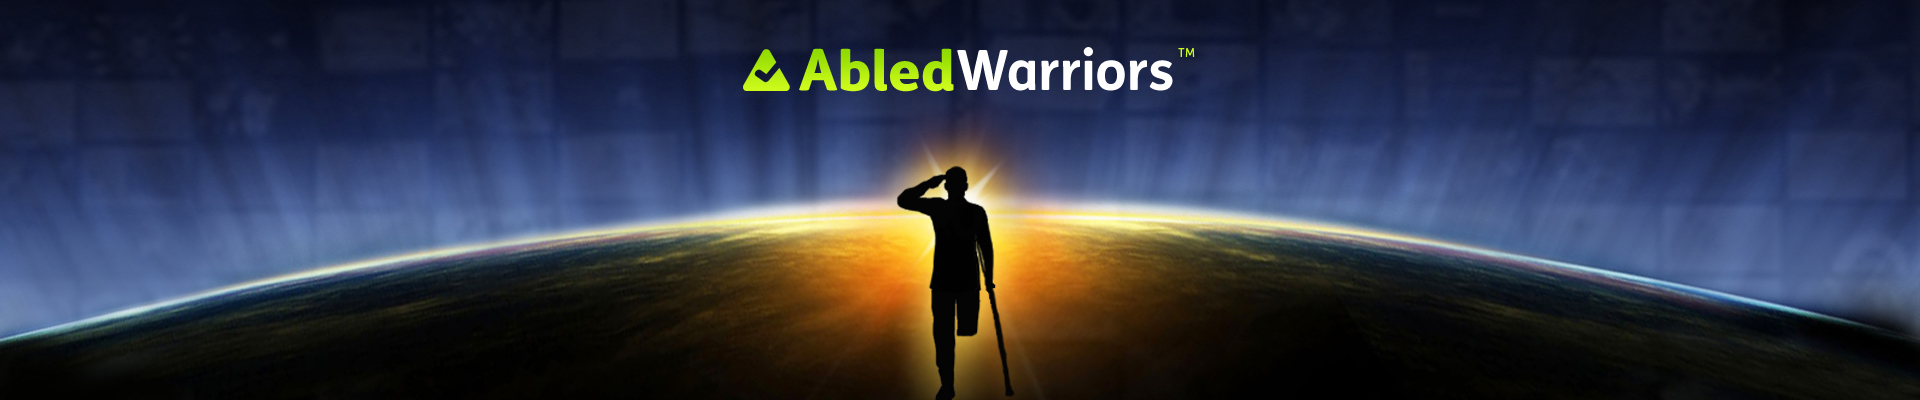 AbledWarriors banner shows a disabled veteran with an amputated leg standing with a crutch while saluting against the backdrop of the curve of the Earth seen from space with a sunrise glowing around the veterans silhouette and a global map showing as a partially dissolved backdrop.